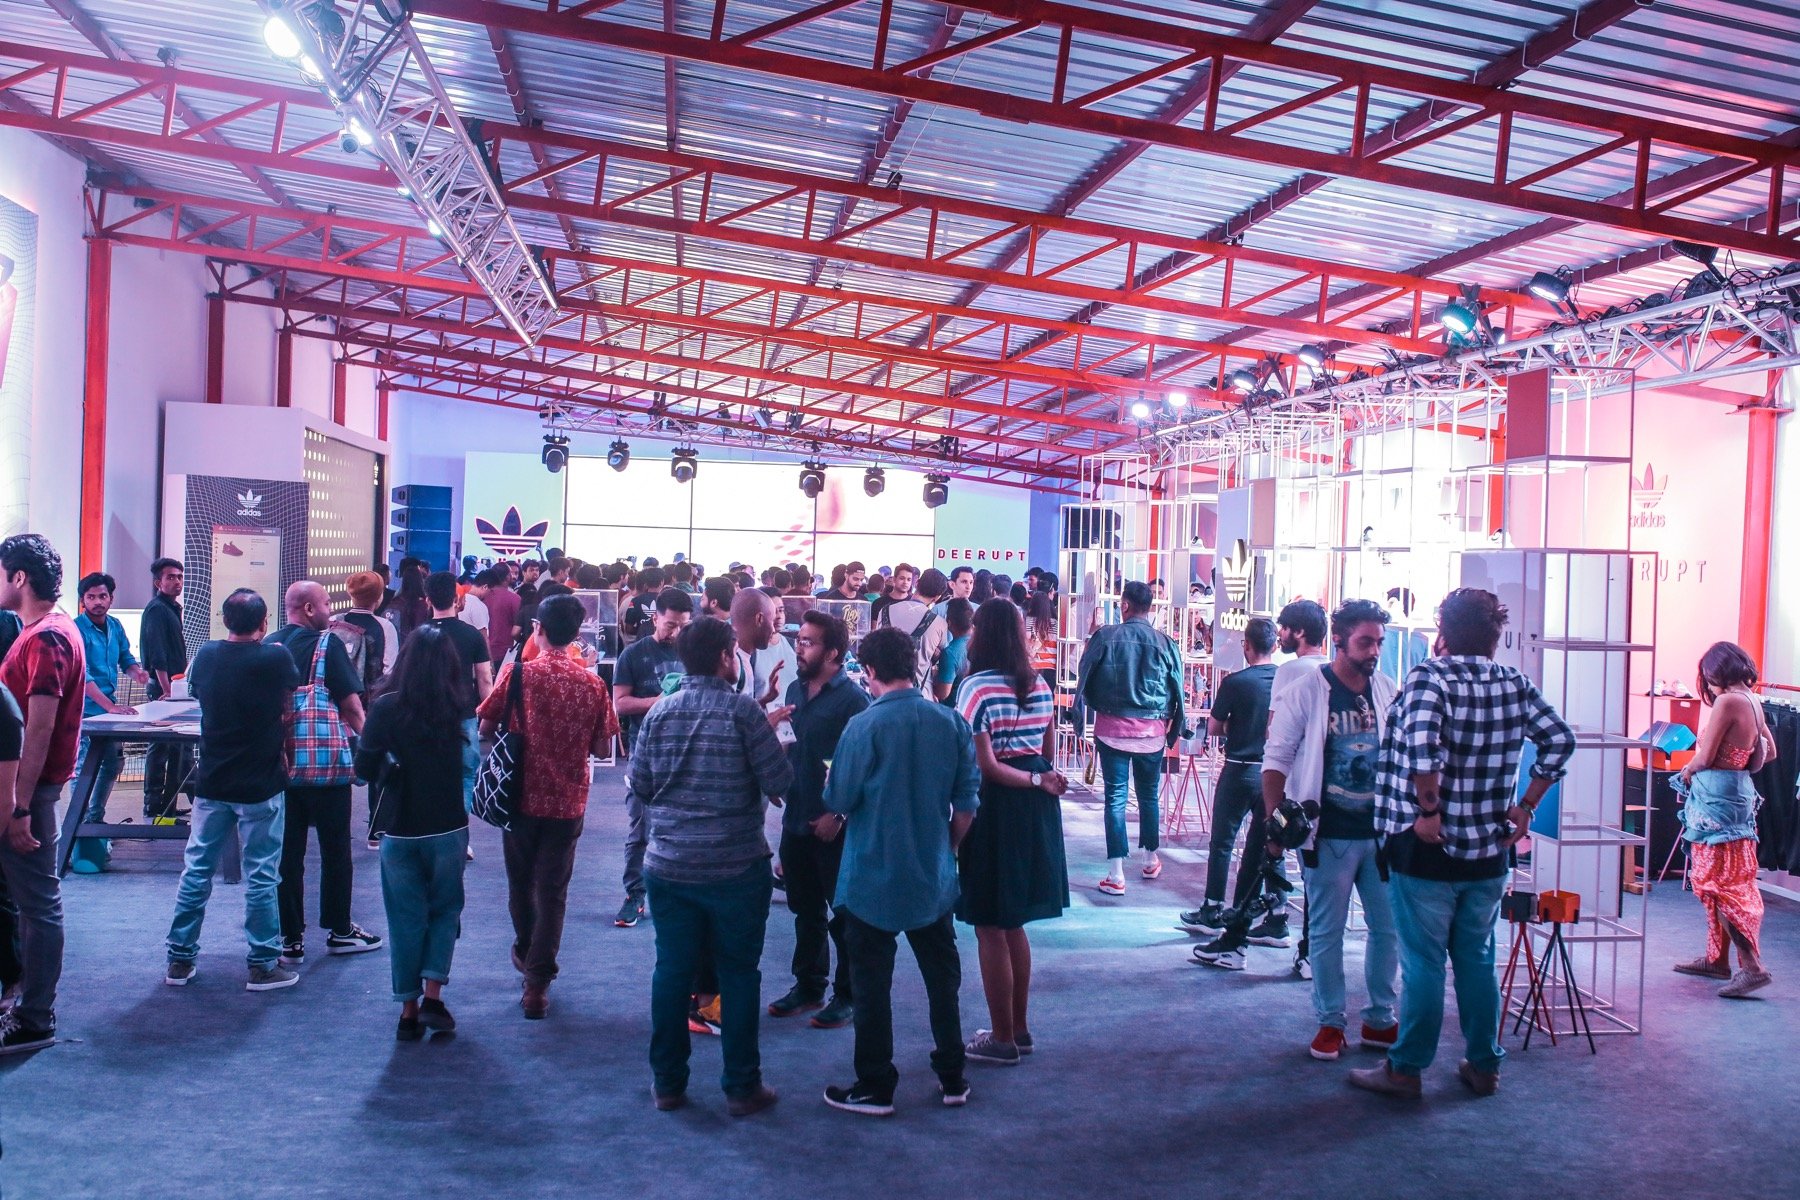 Homegrown India presents HGStreet in Mumbai on March 18, 2018, a celebration of sneaker and street culture - launch of adidas Deerupt by adidas Originals at the Deerupt ExperienceCopy of 976A6194.jpg